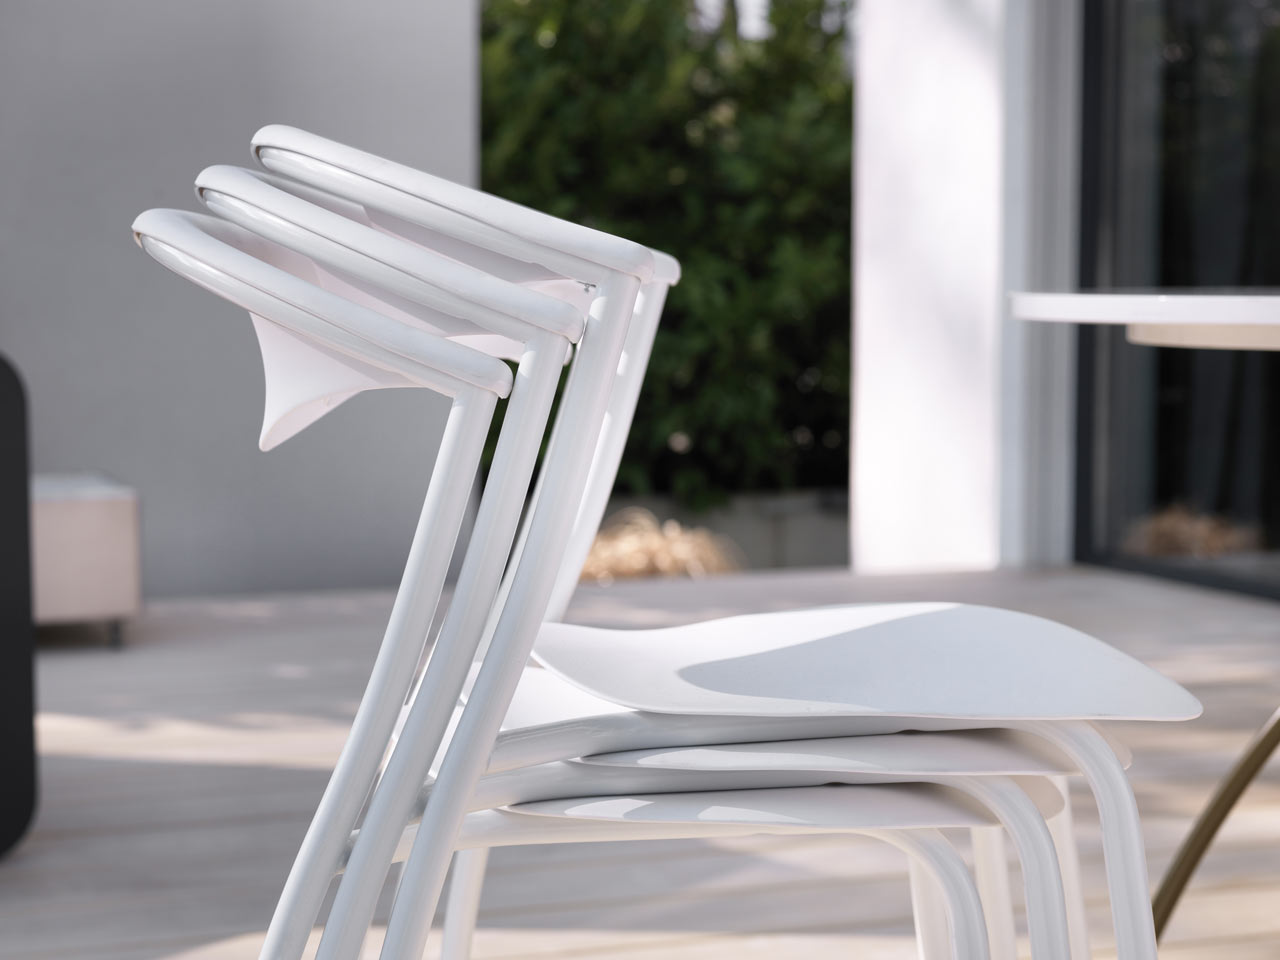 ames-outdoor-dreki-chair-table-7